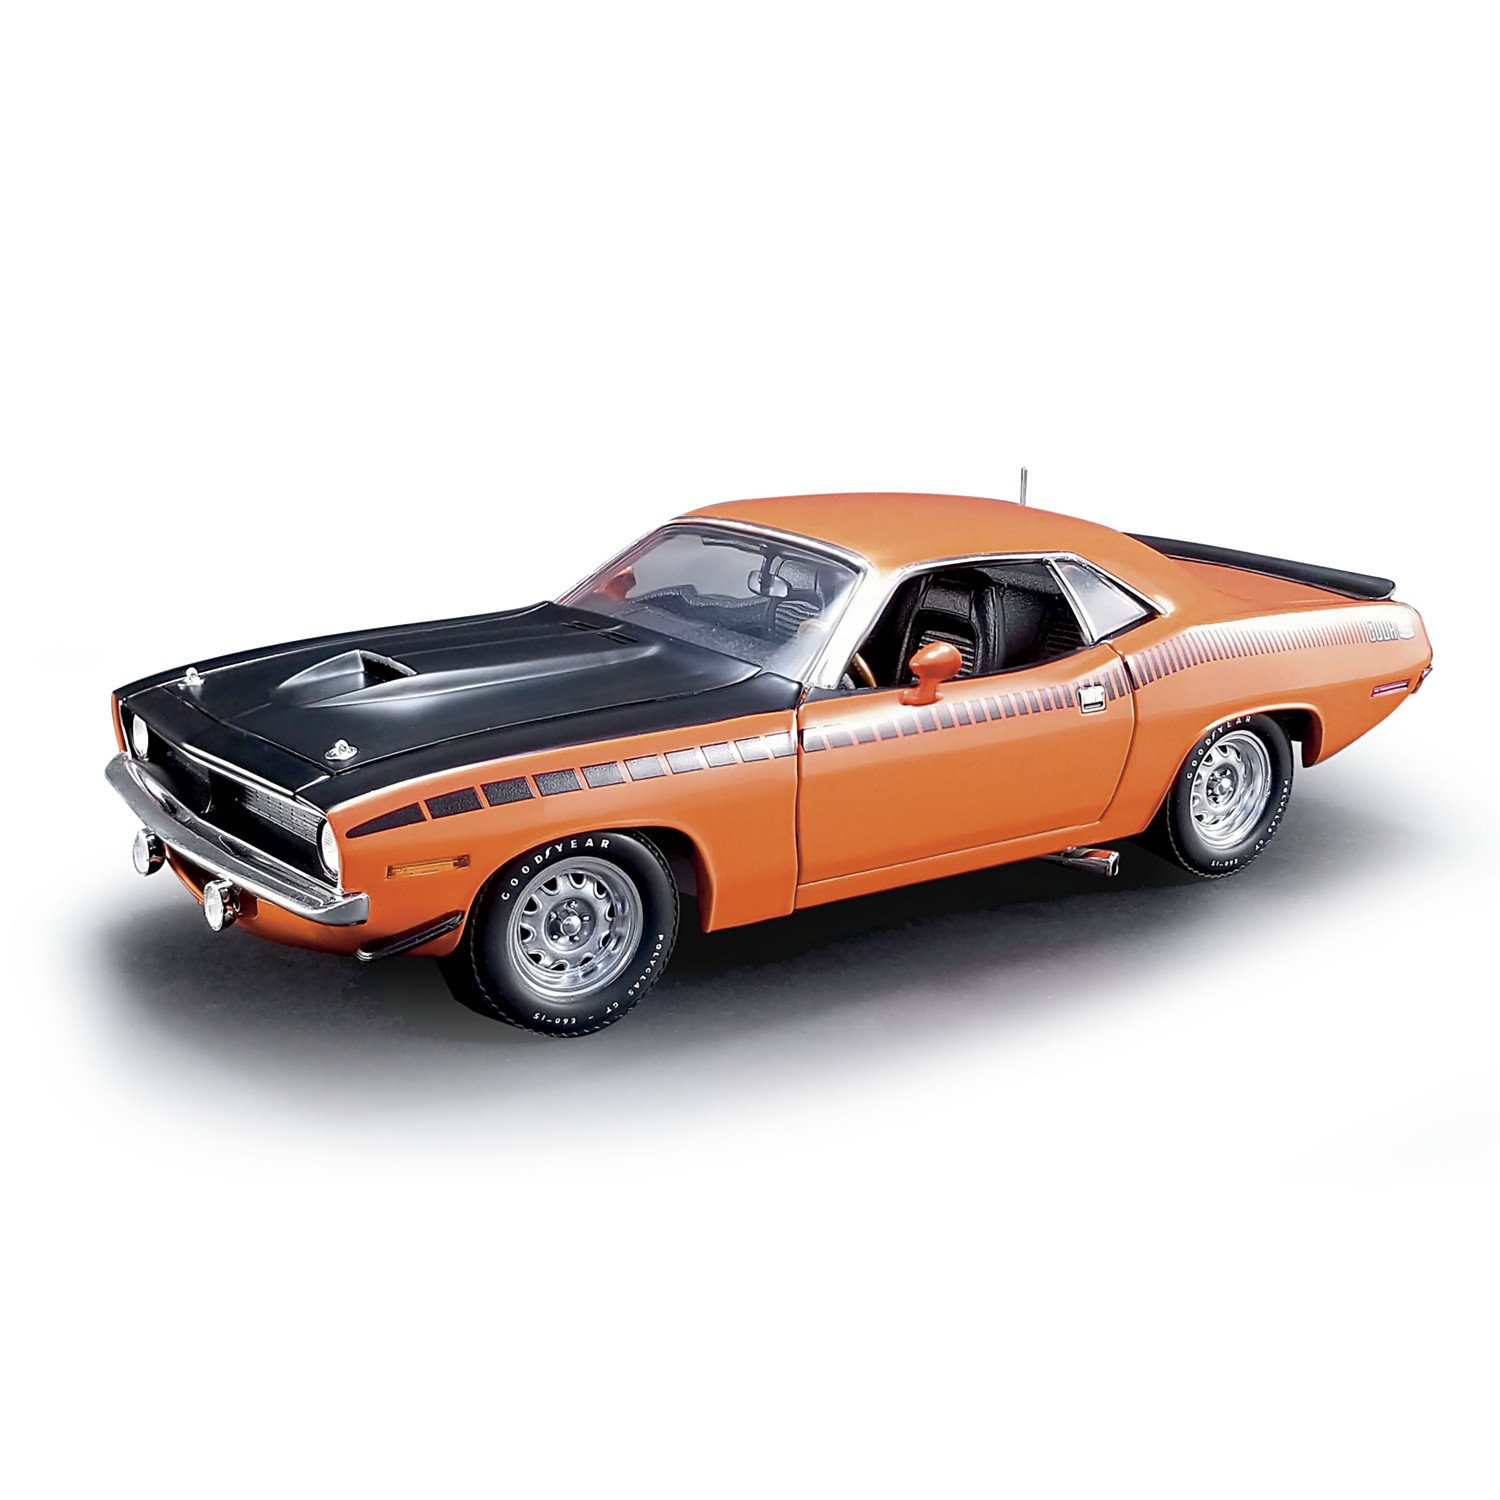 The Hamilton Collection 1:18 Scale 1970 Plymouth AAR Barracuda Collectible Diecast Car: Over 220 Parts